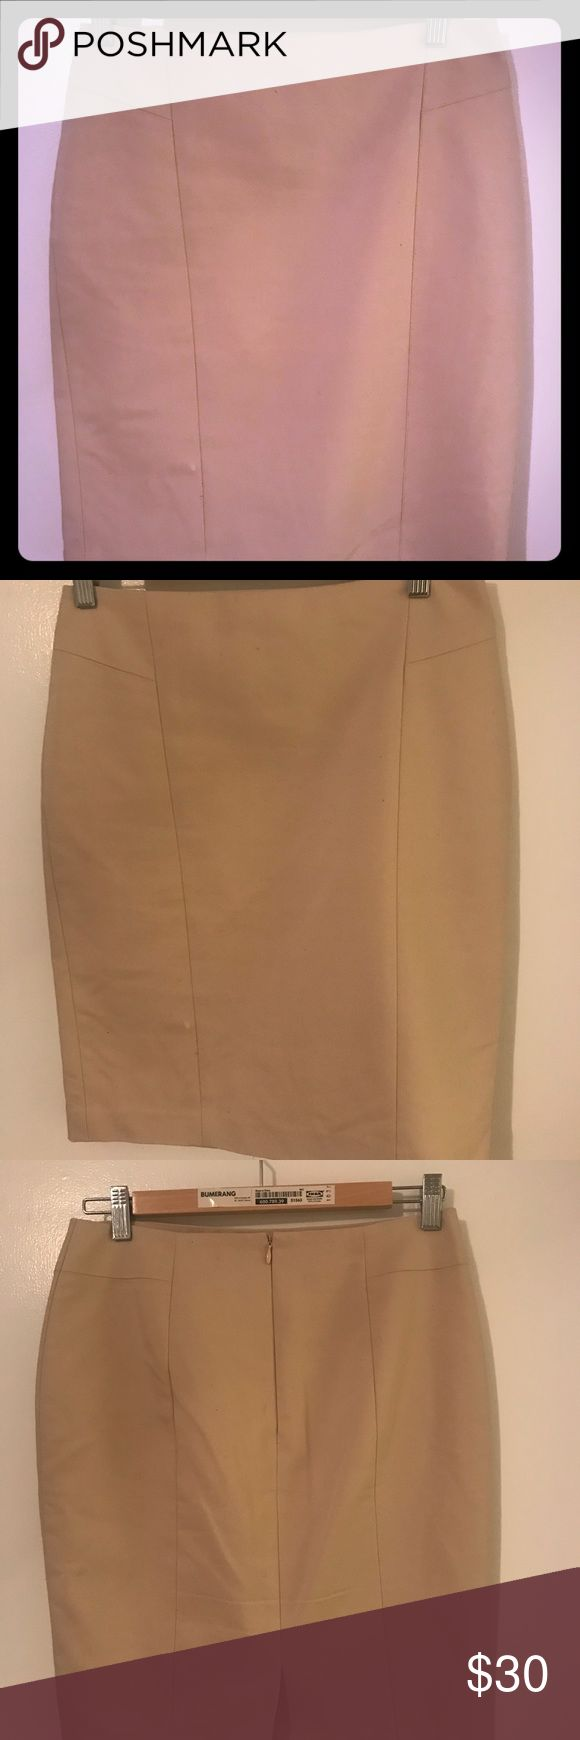 Ann Taylor Pencil skirt (4P) This is an Ann Taylor pencil skirt in excellent confident. It is a size 4P. The color is more of a cream than tan. Ann Taylor Skirts Pencil